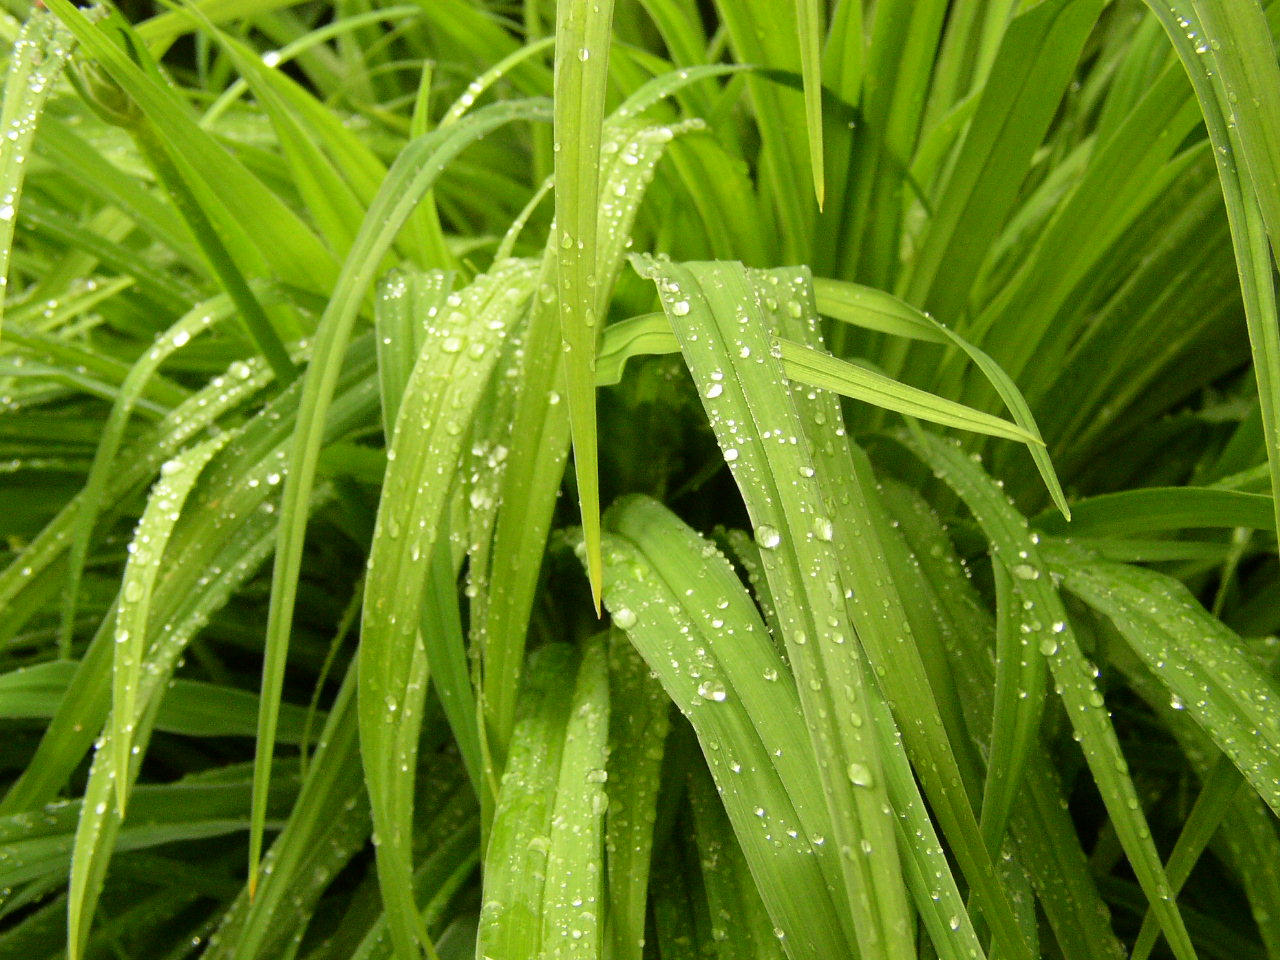 Stock Rained Grass 2 by zommy